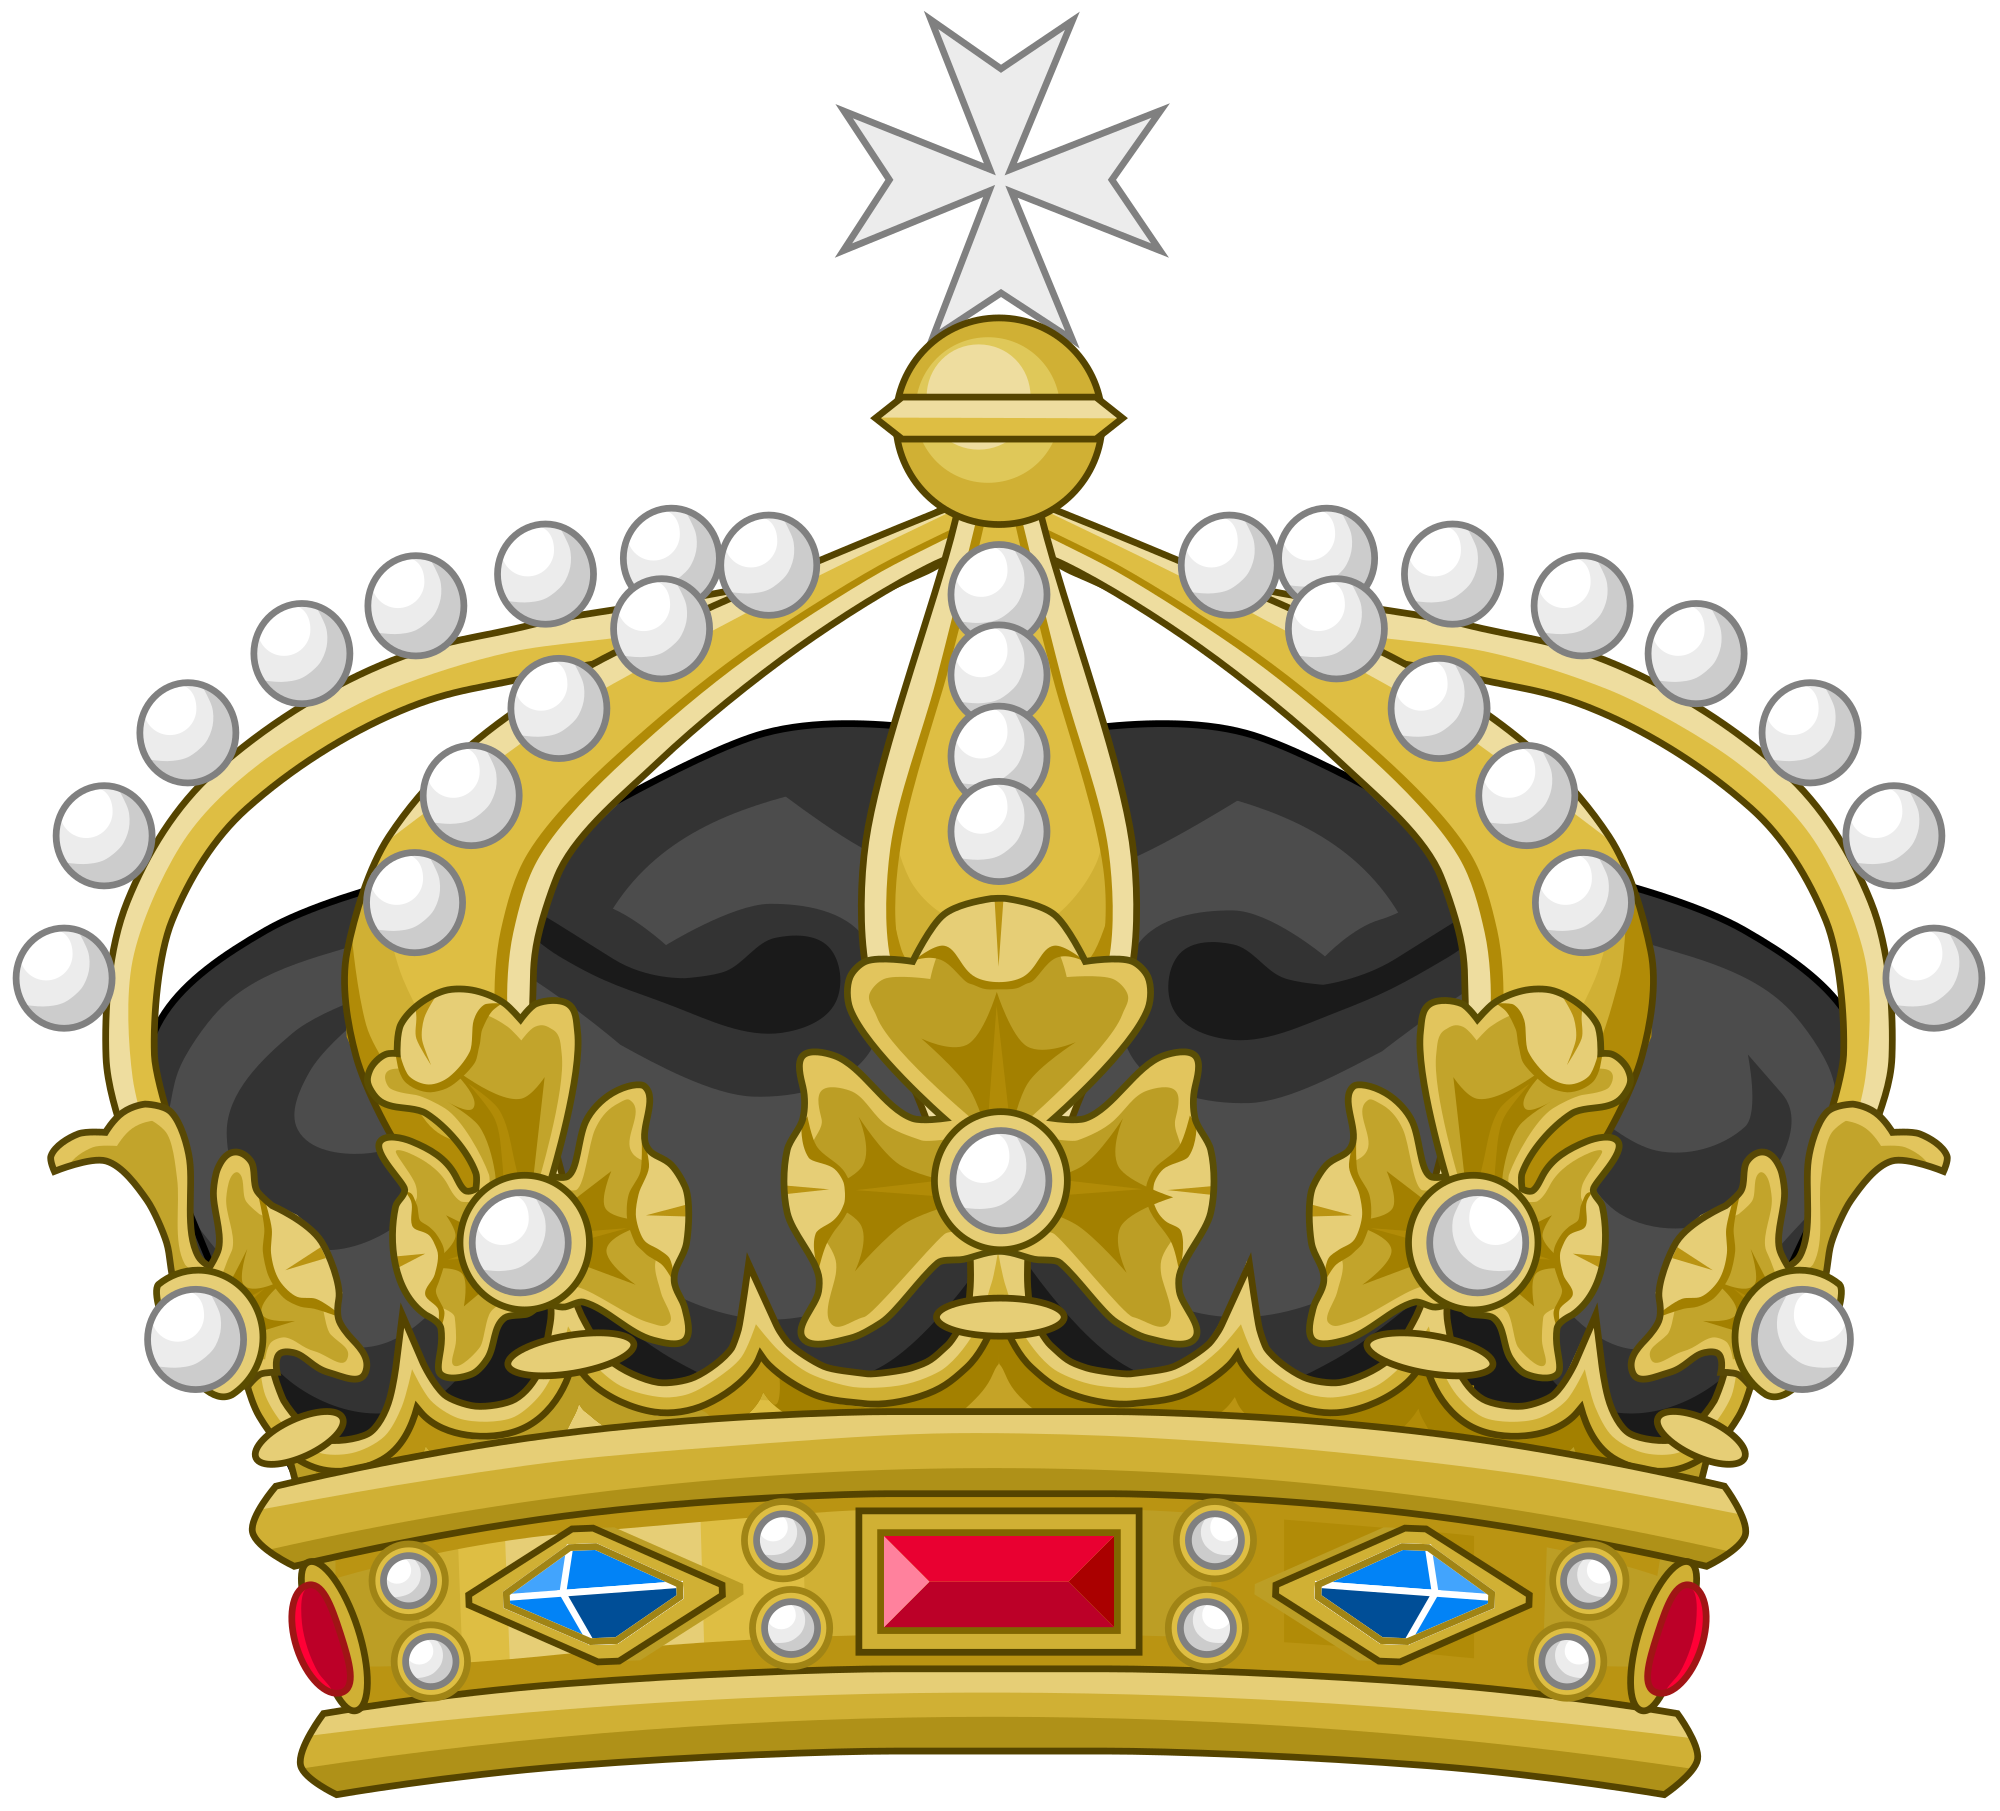 Crown b and w clipart clip art black and white File:Crown of the Sovereign Military Order of Malta (Heraldry).svg ... clip art black and white